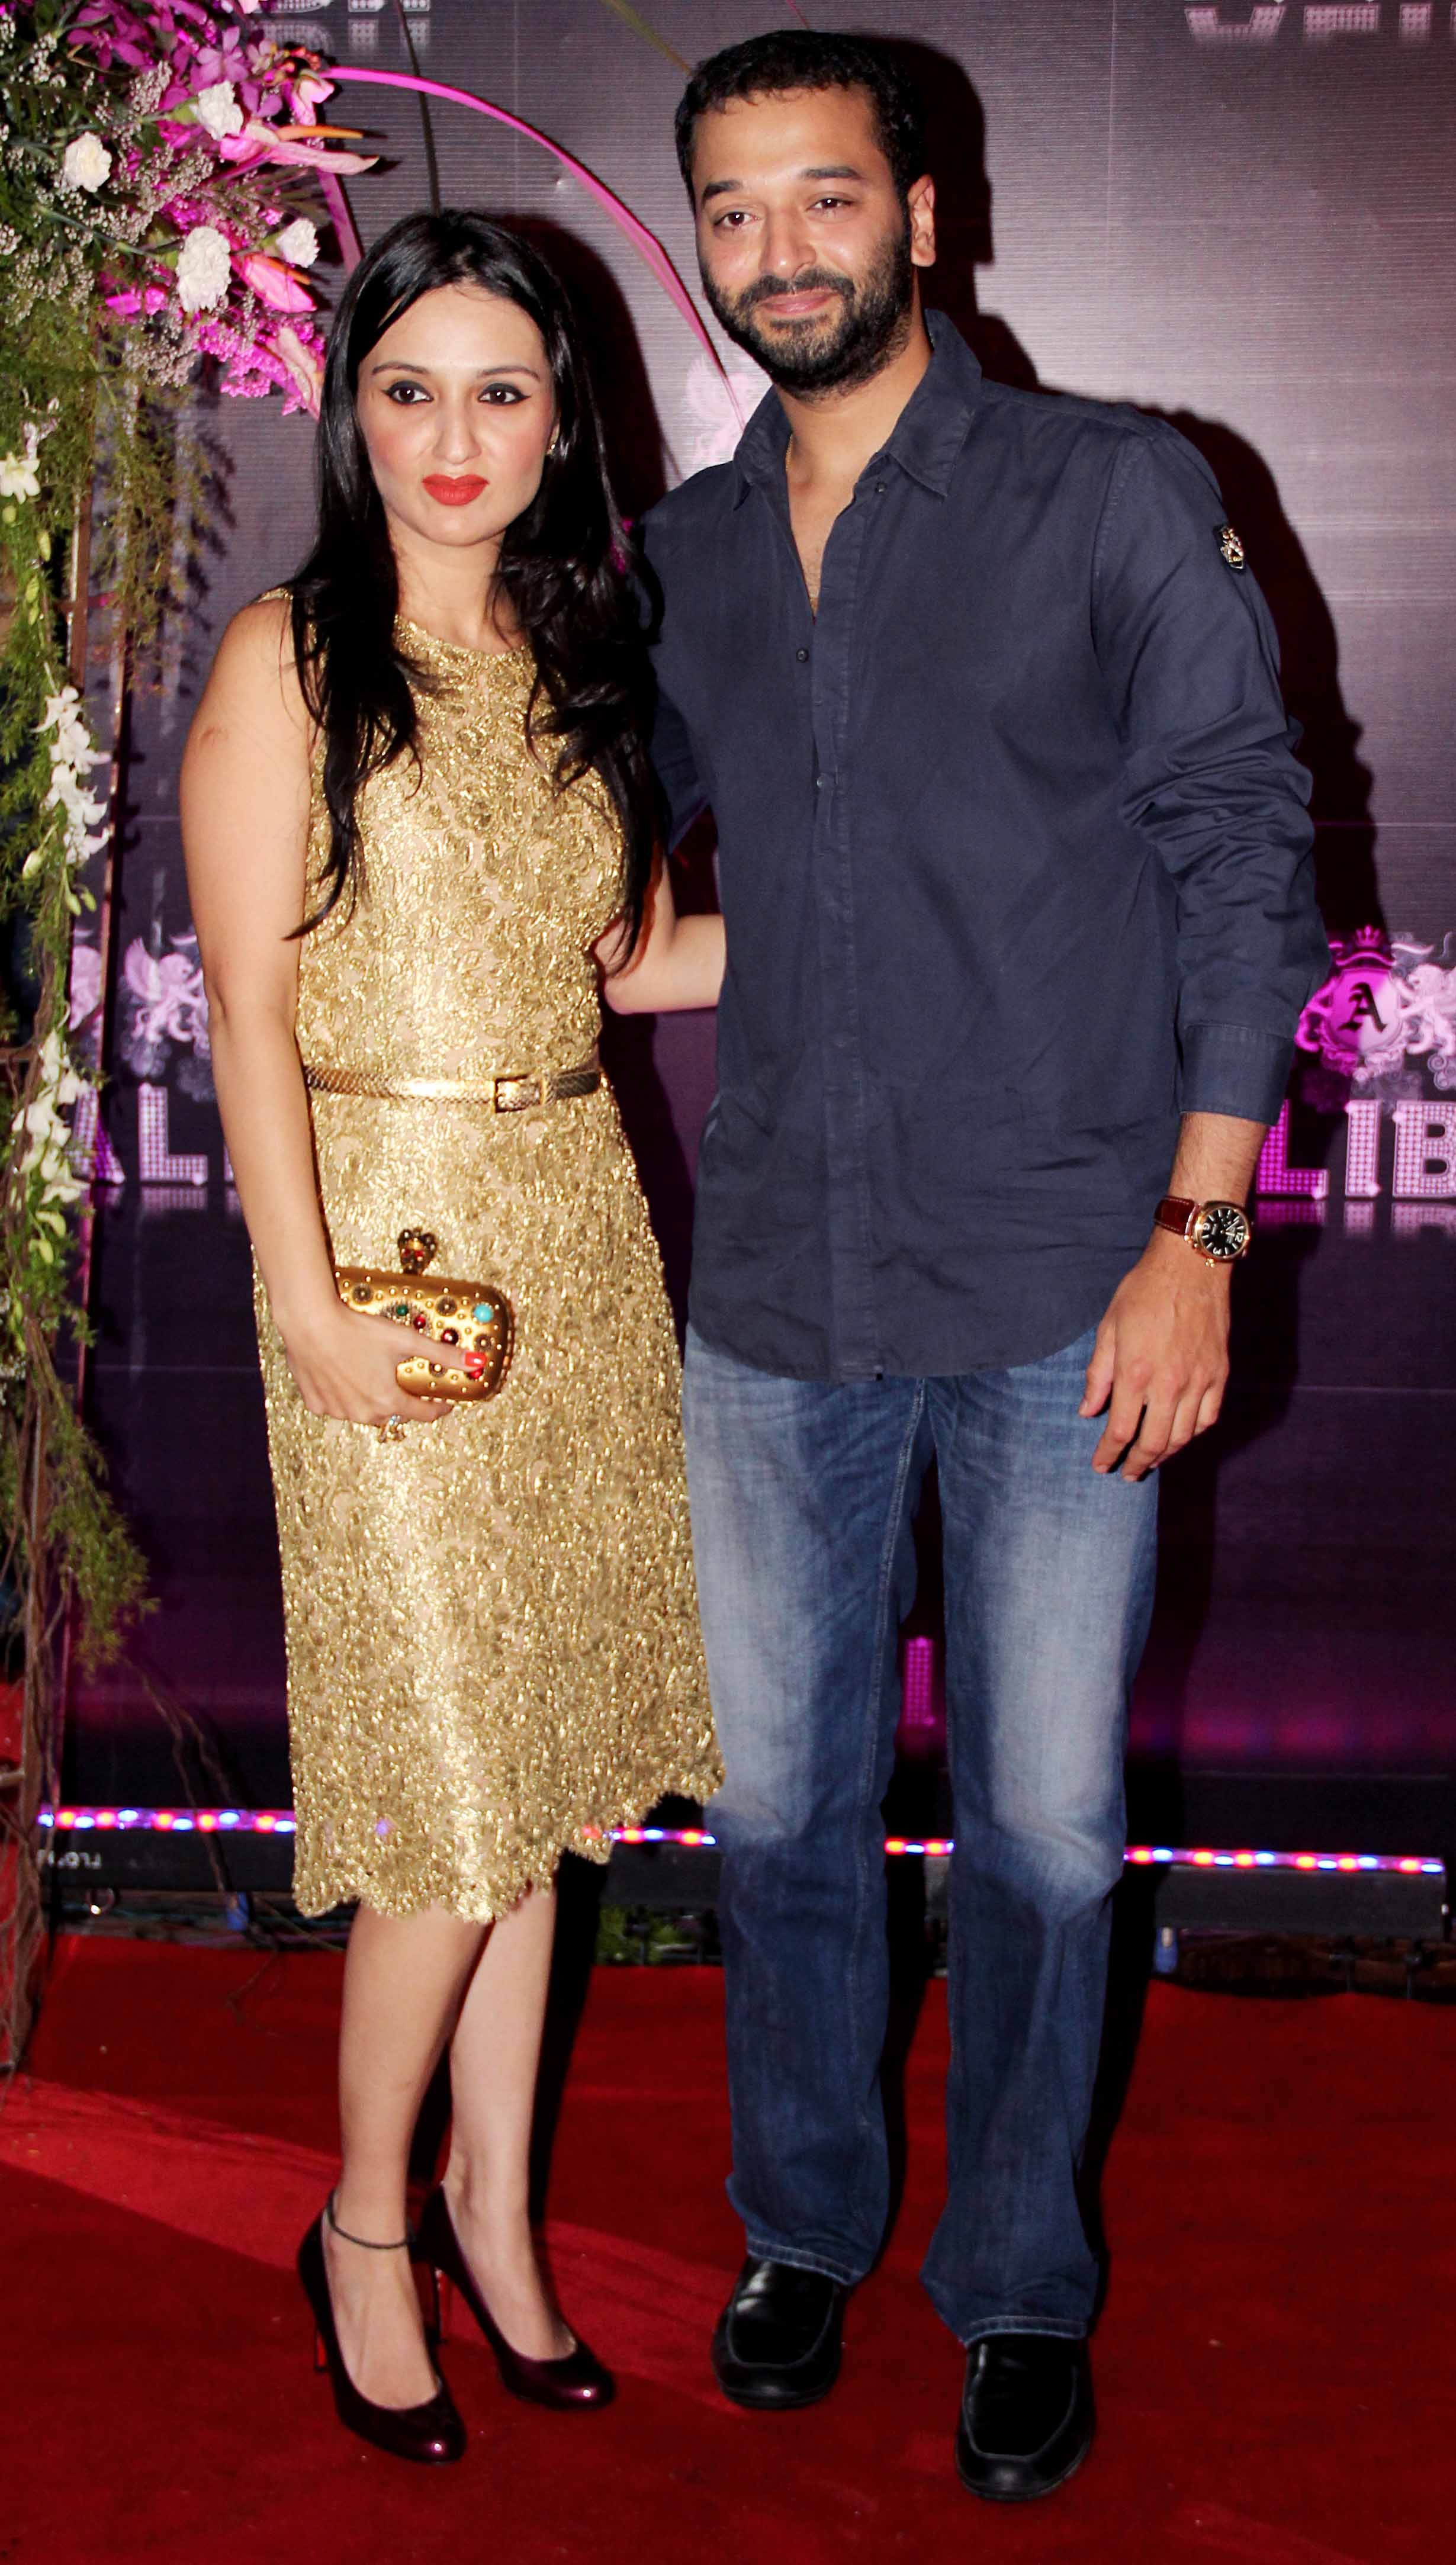 Celebrity Wedding Anniveraries - Celebrity Wedding Dates